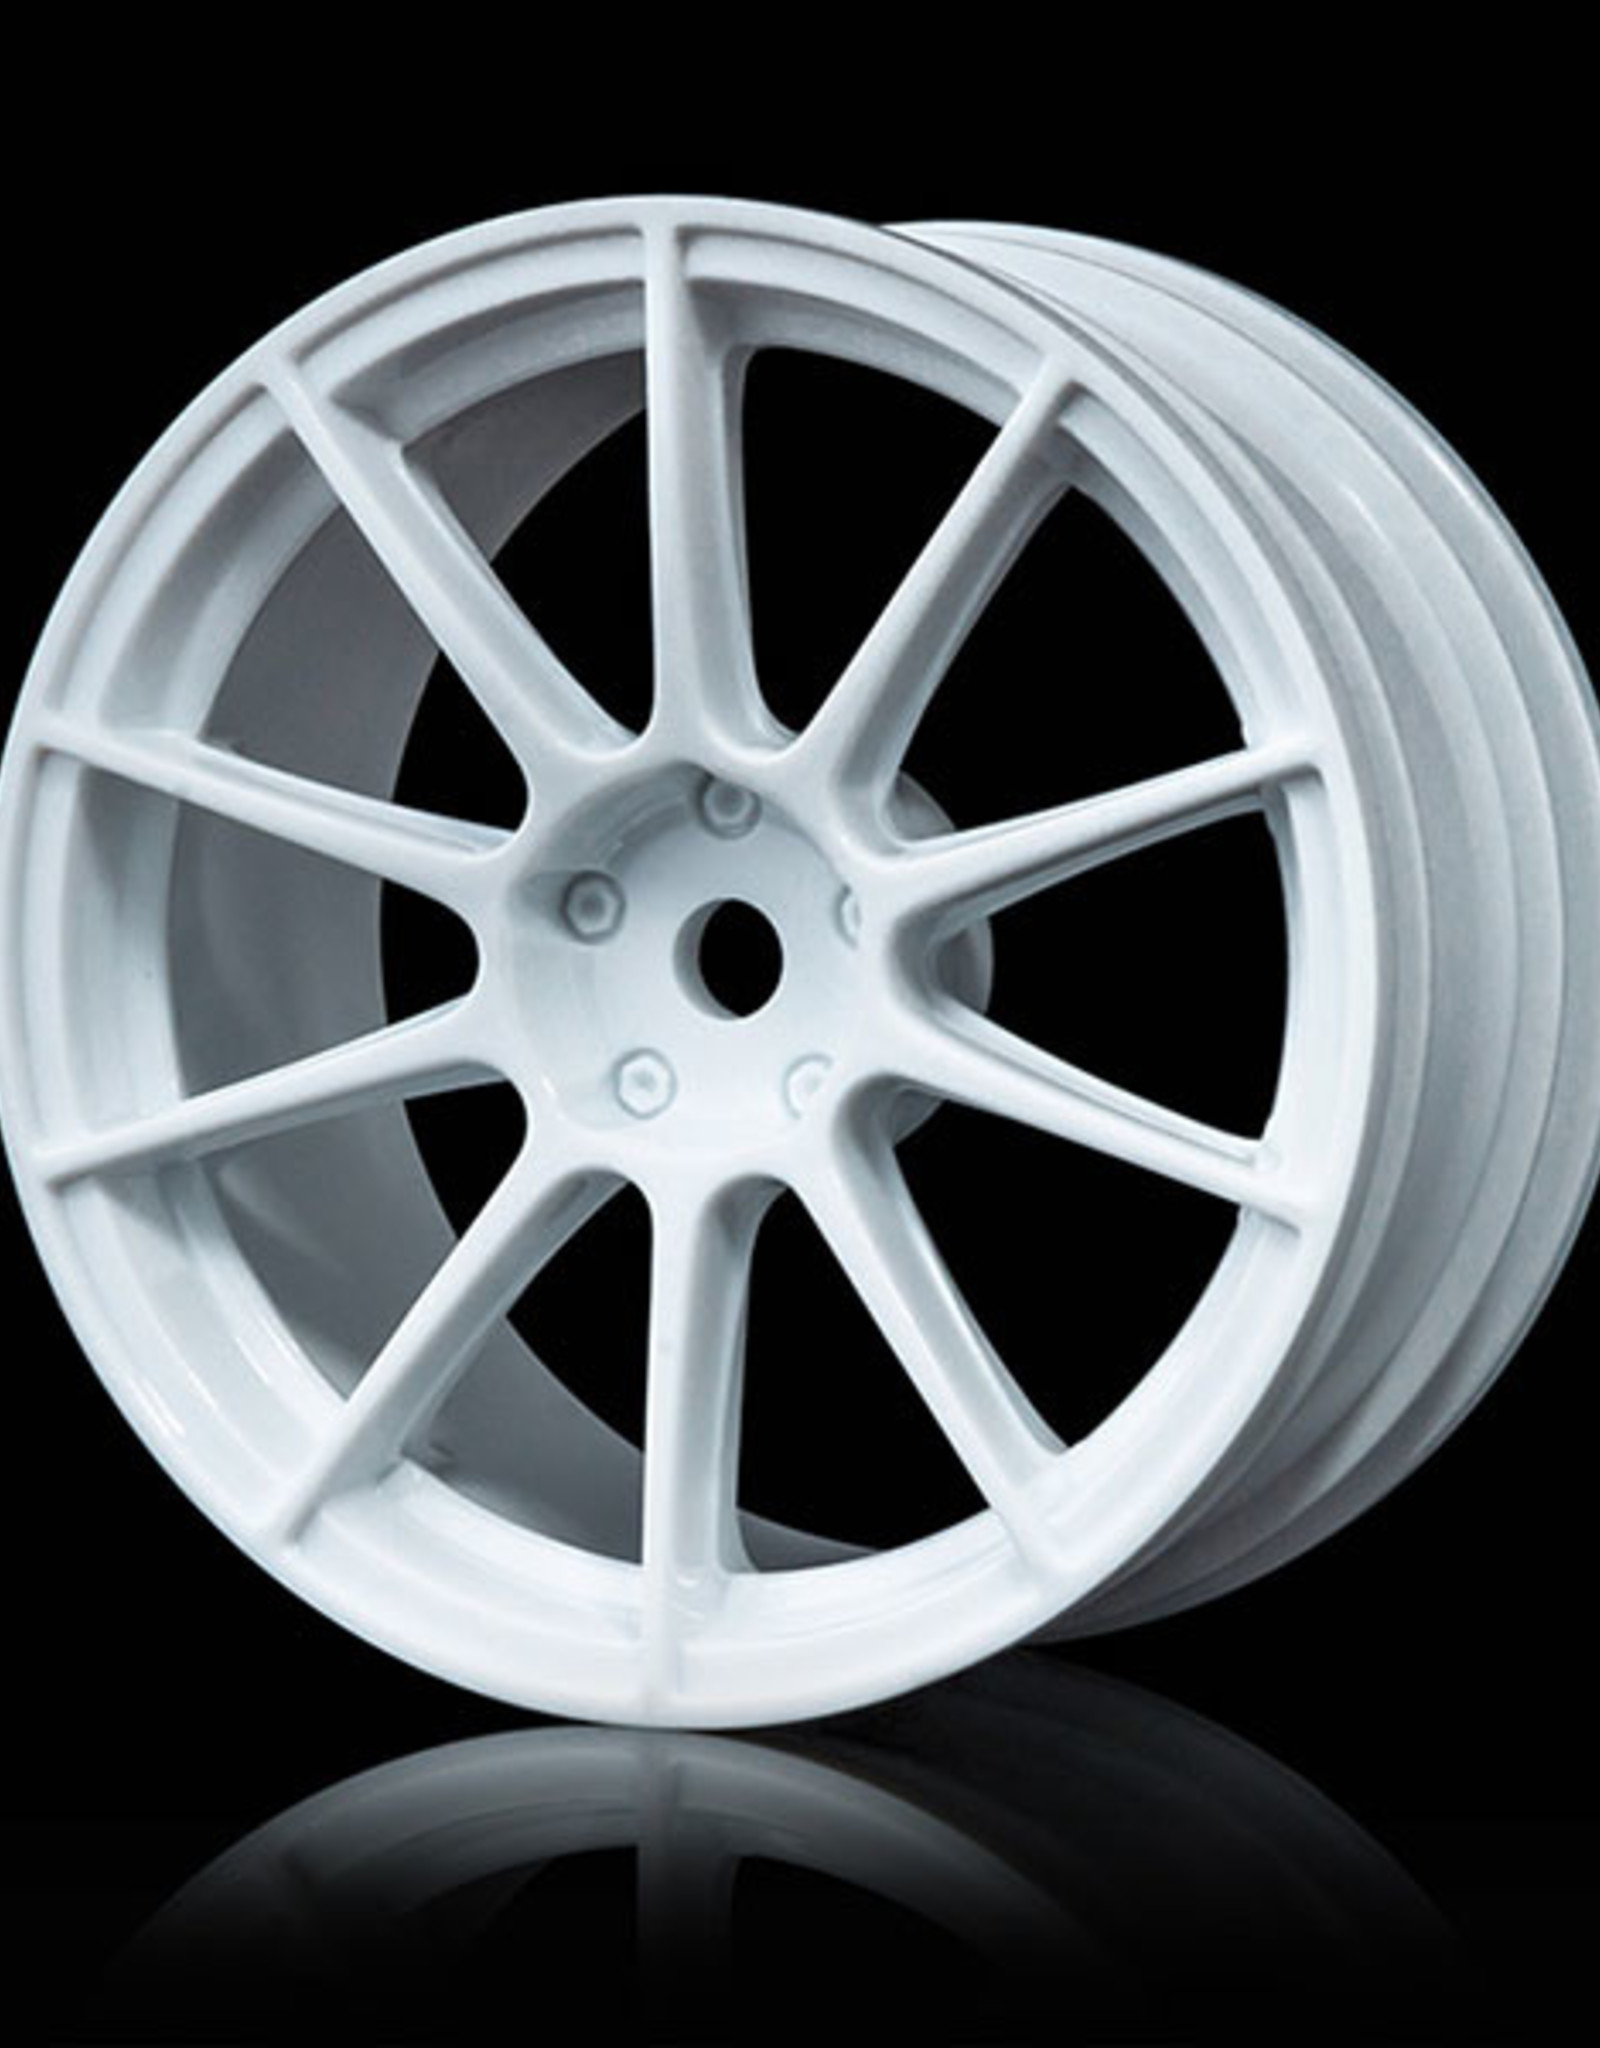 MST 5H Drift Wheel (4pcs) - MST White 1mm